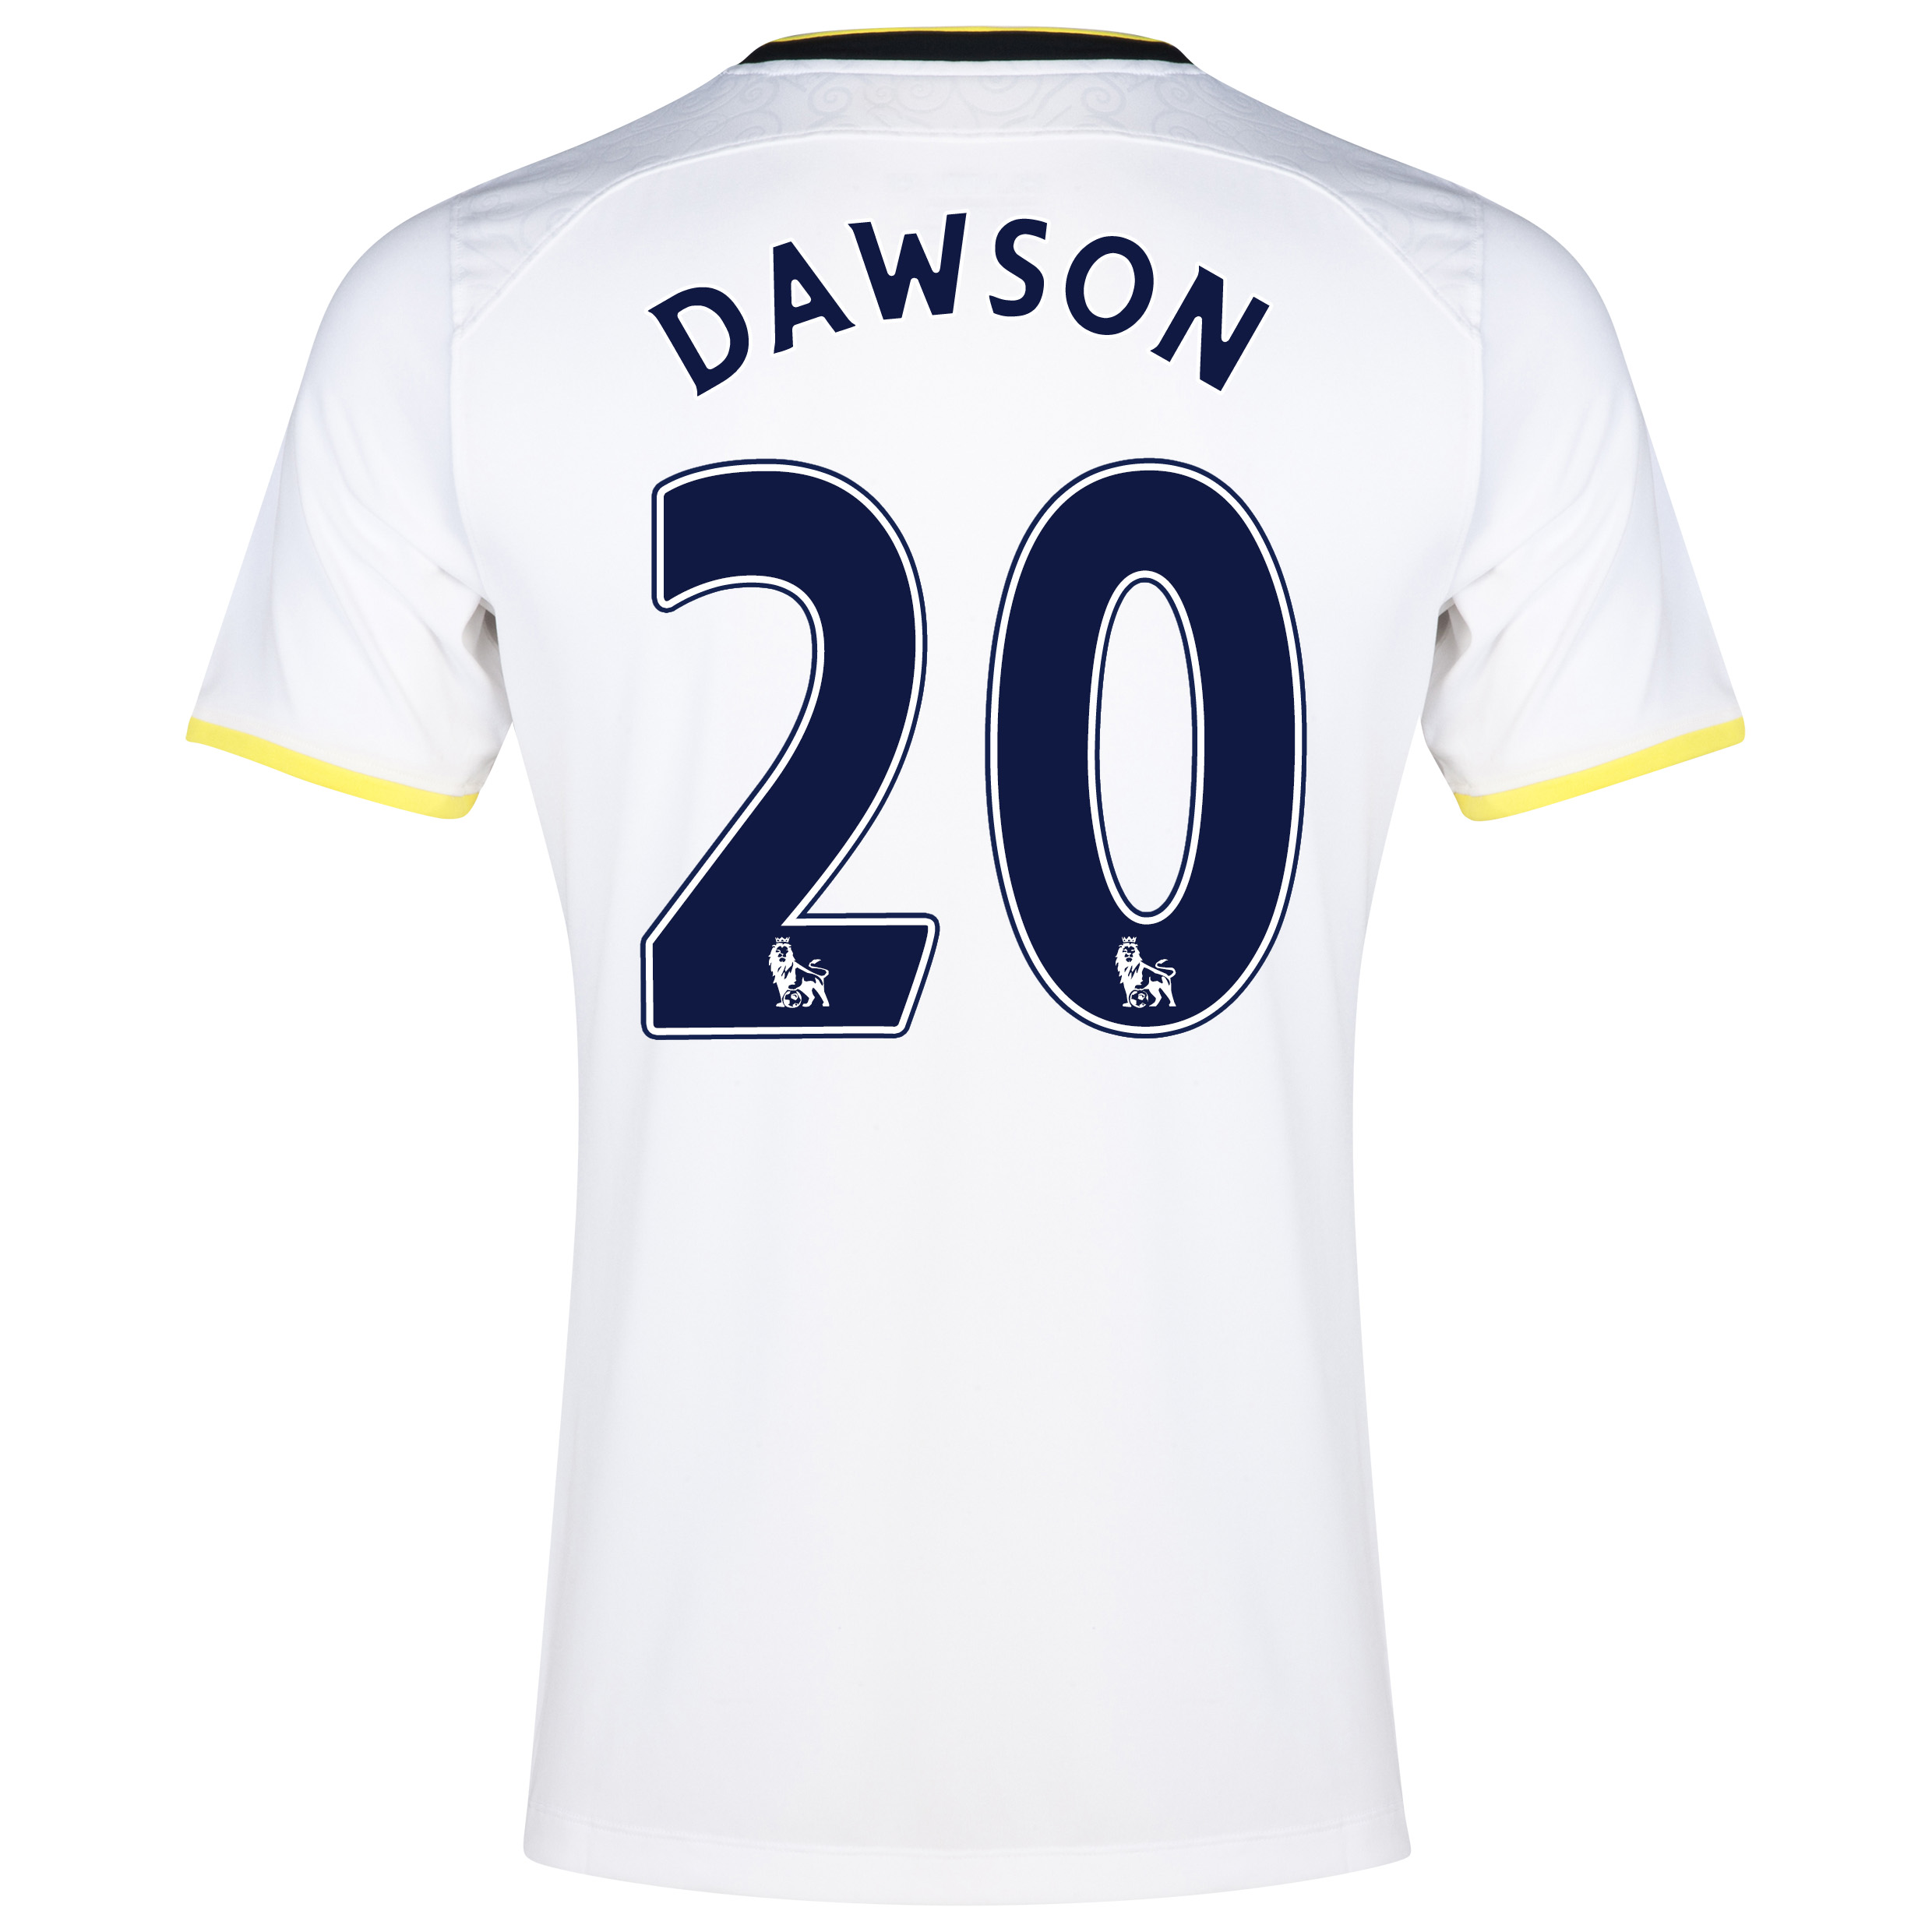 Tottenham Hotspur Home Shirt 2014/15 with Dawson 20 printing